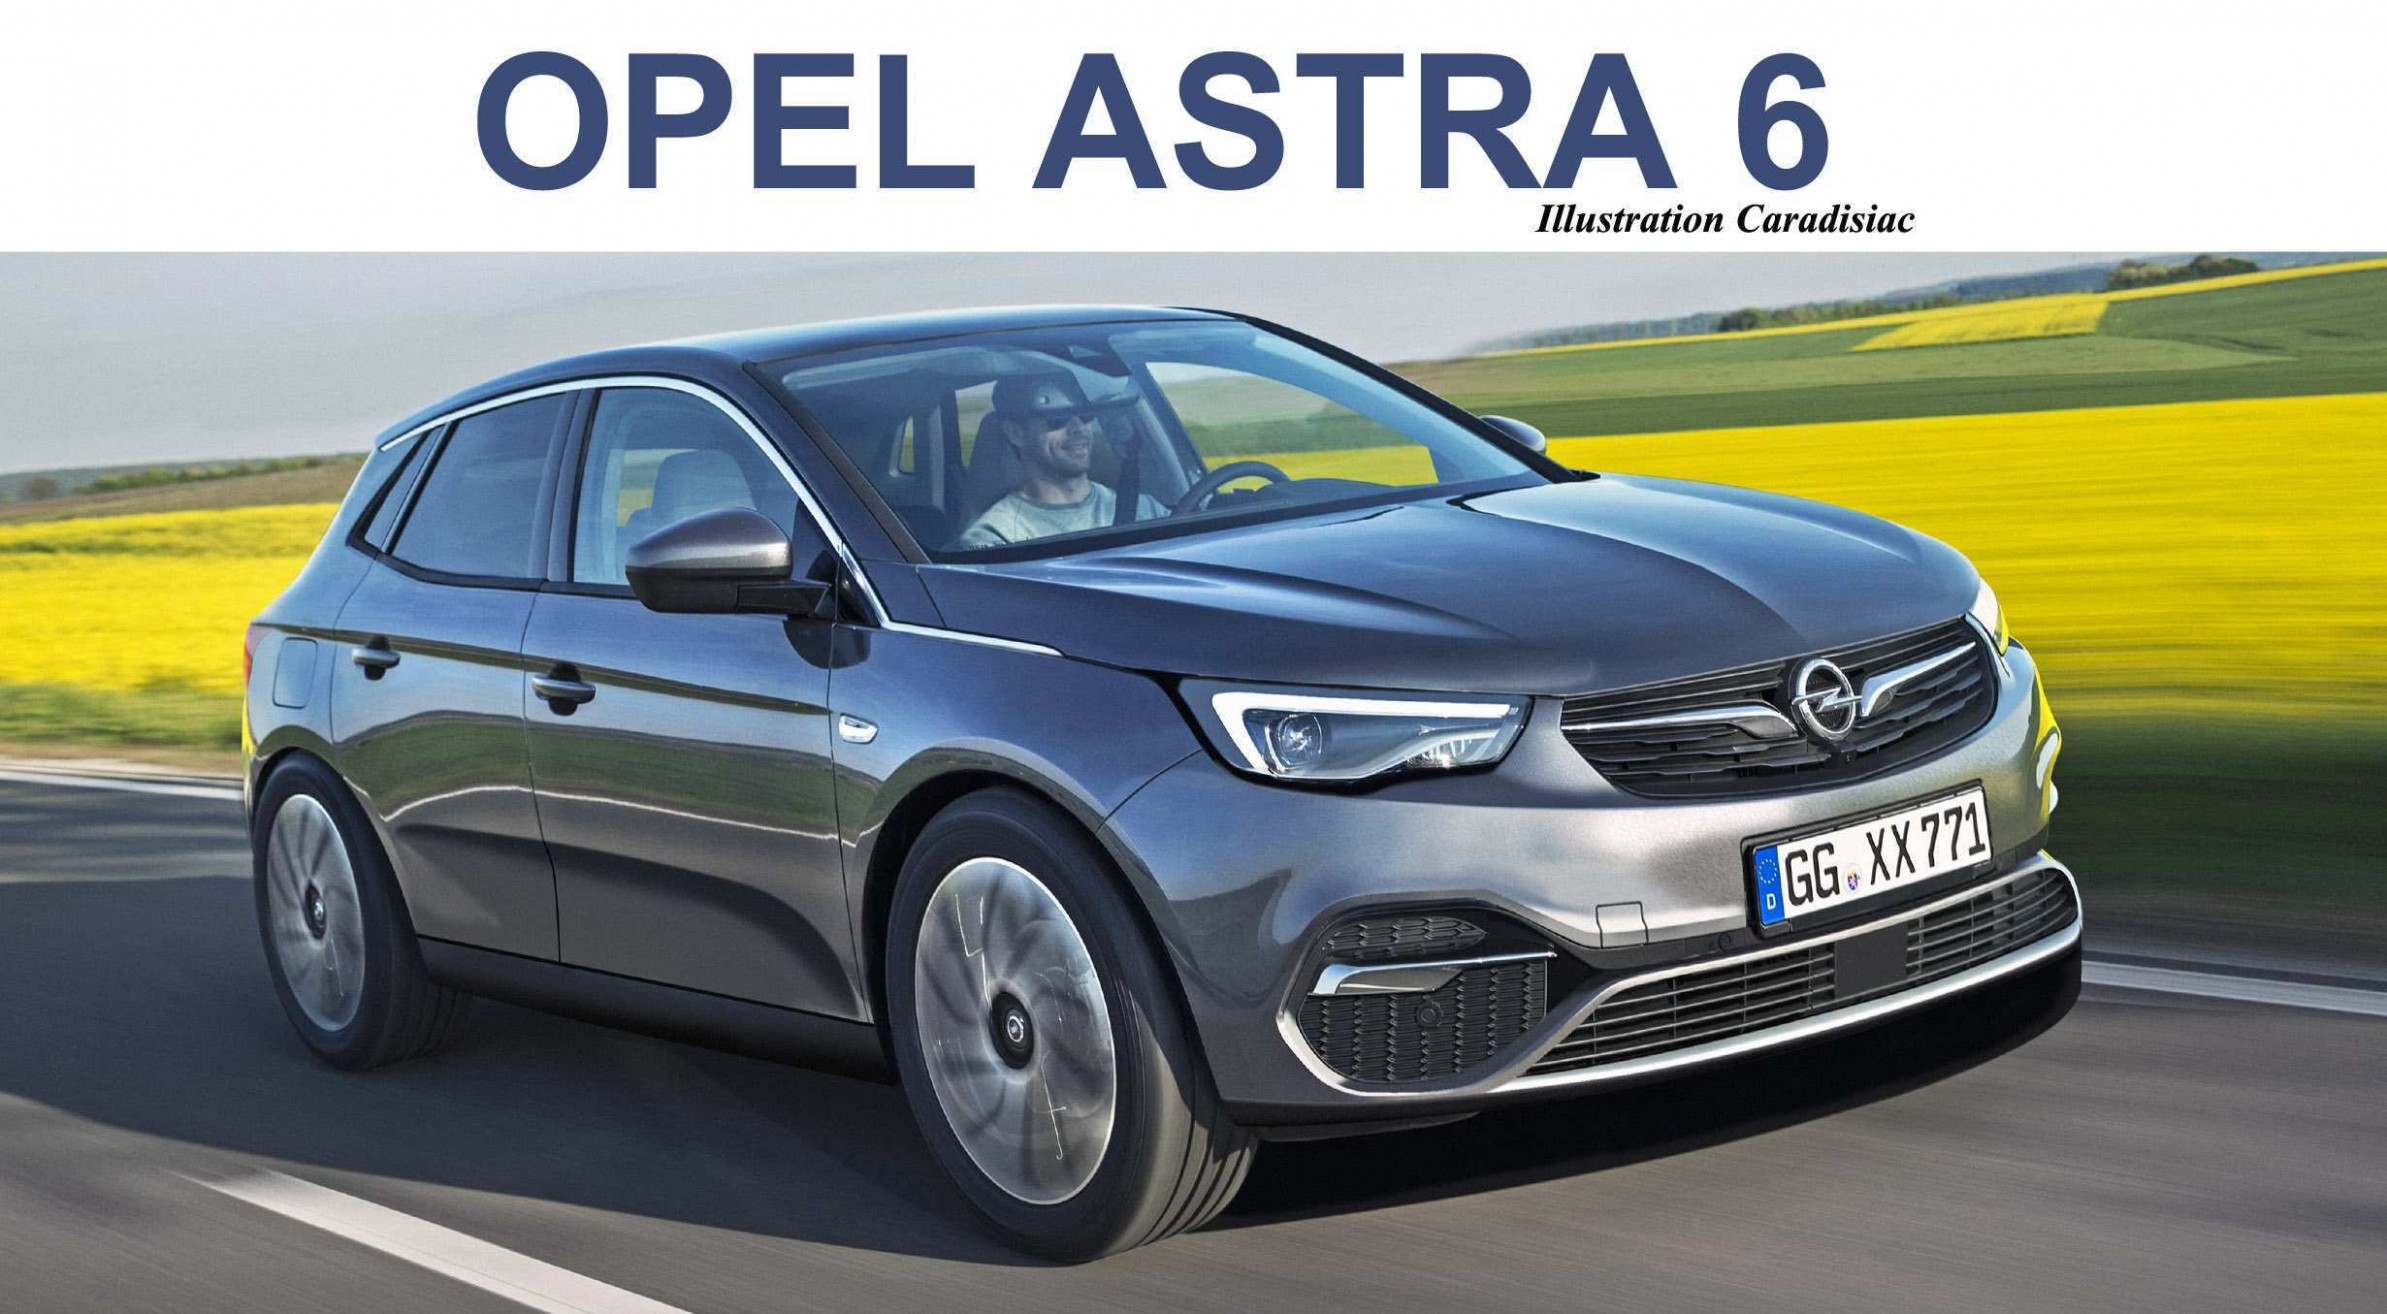 8 New Opel Astra Gtc 8 Release - Car Review 8 : Car Review 8